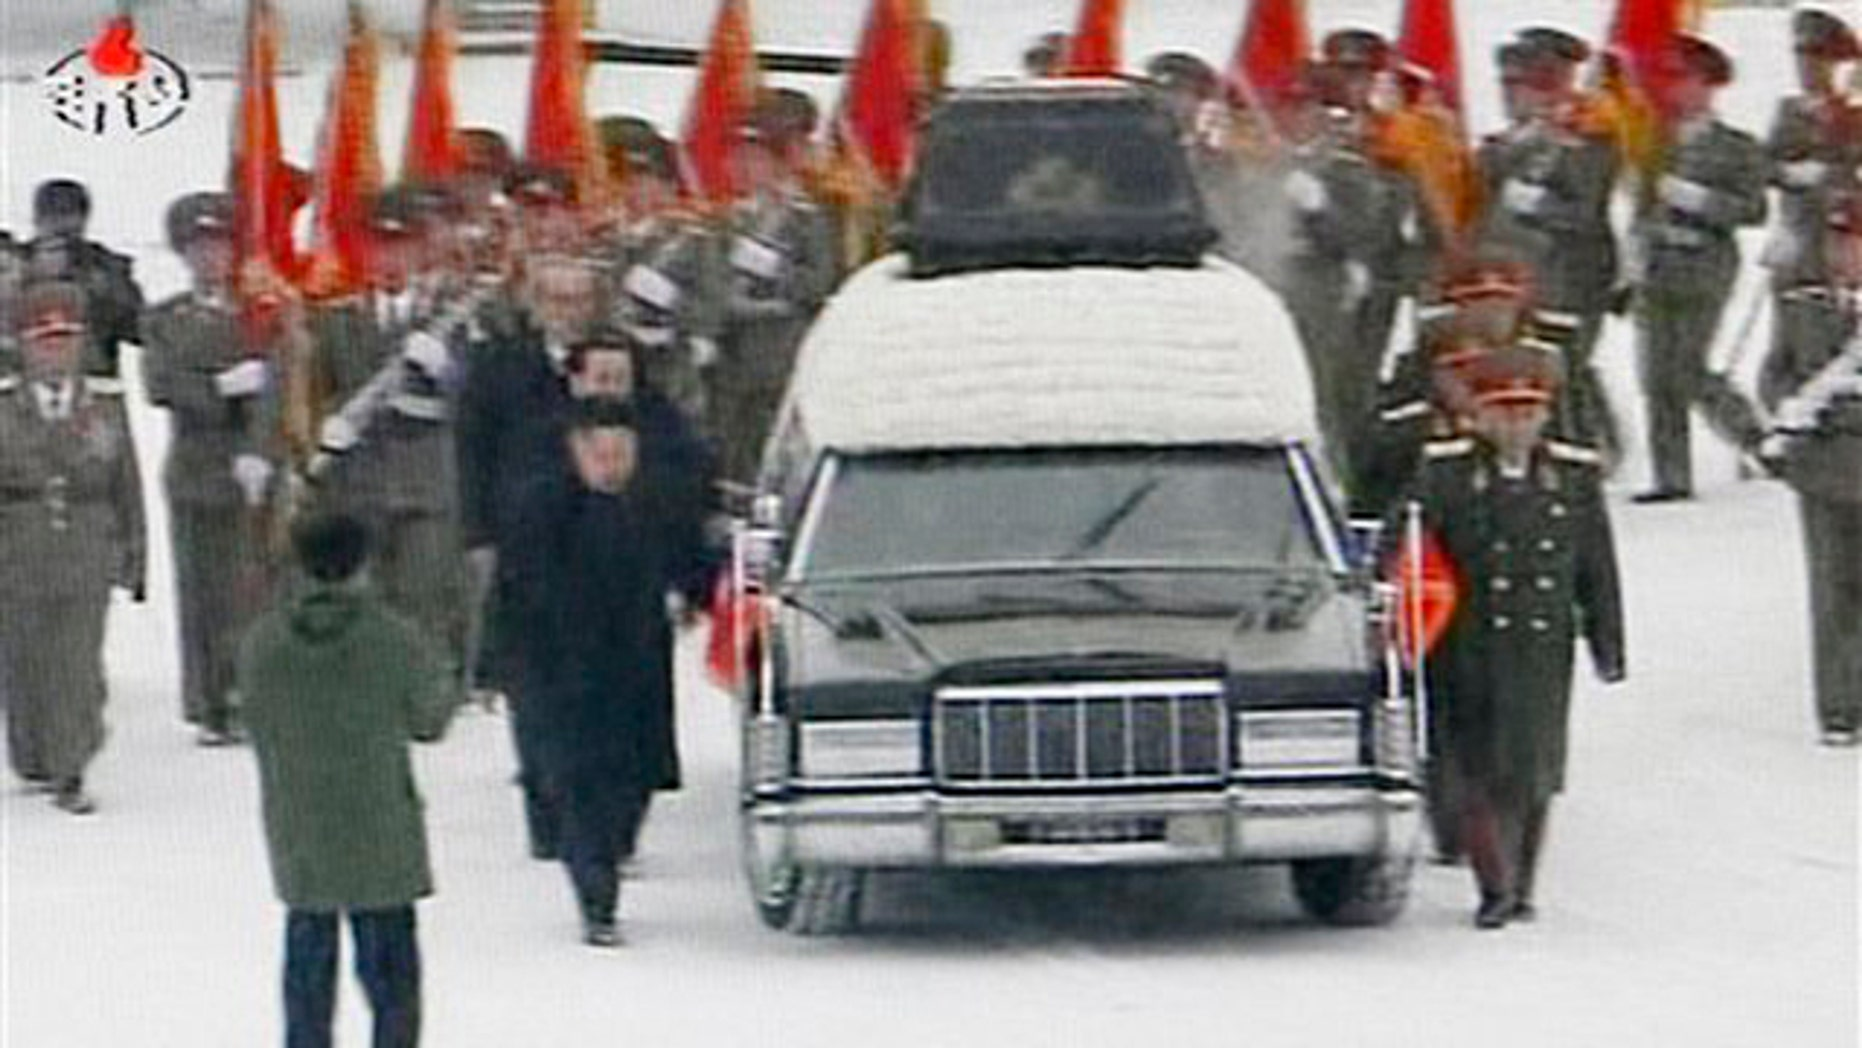 December 28, 2011: In this image made from KRT television, a hearse is driven during a funeral procession of late North Korean leader Kim Jong Il in the snow in Pyongyang, North Korea.